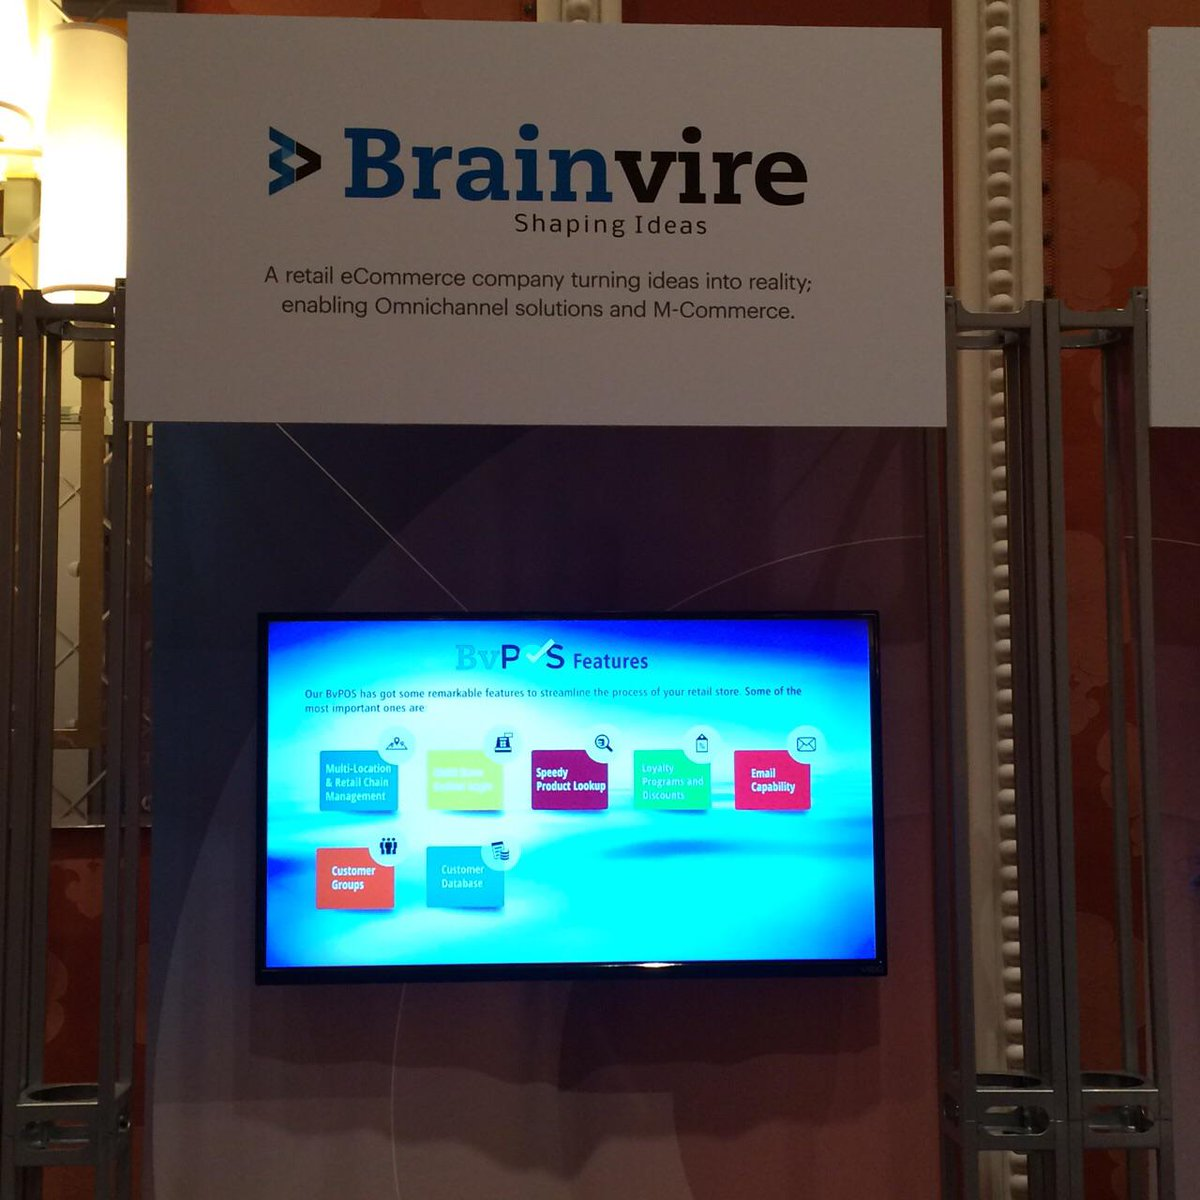 Ecomextension: @Brainvire representing BvPOS – A #PointOfSale System at #MagentoImagine Conference.nMeet us @ Booth #17 #imagine2015 http://t.co/PXjma80EEb